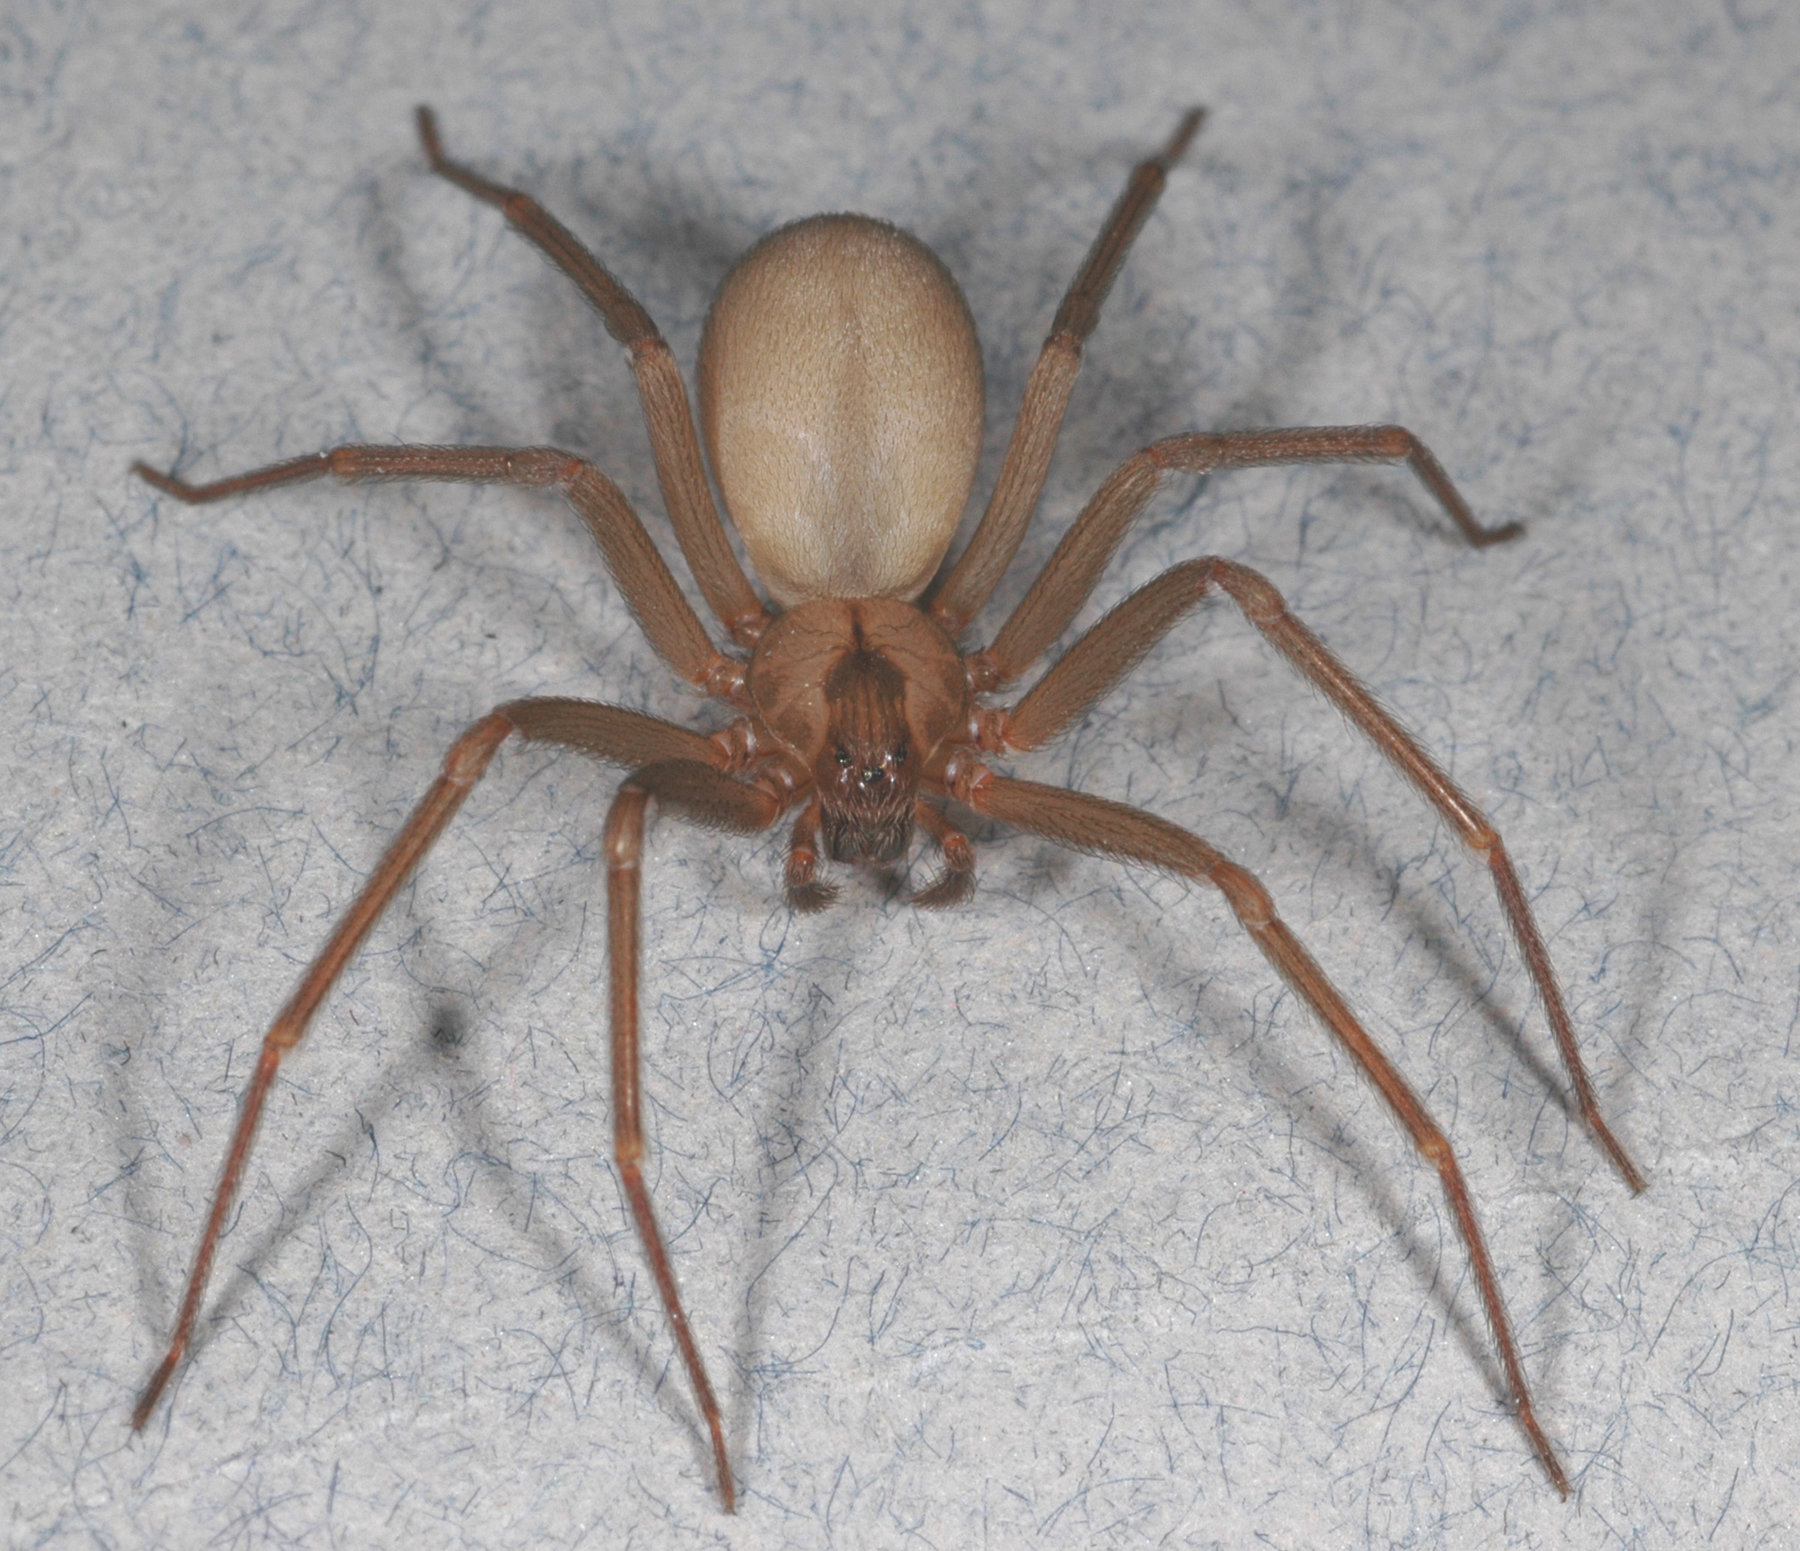 brown recluse california